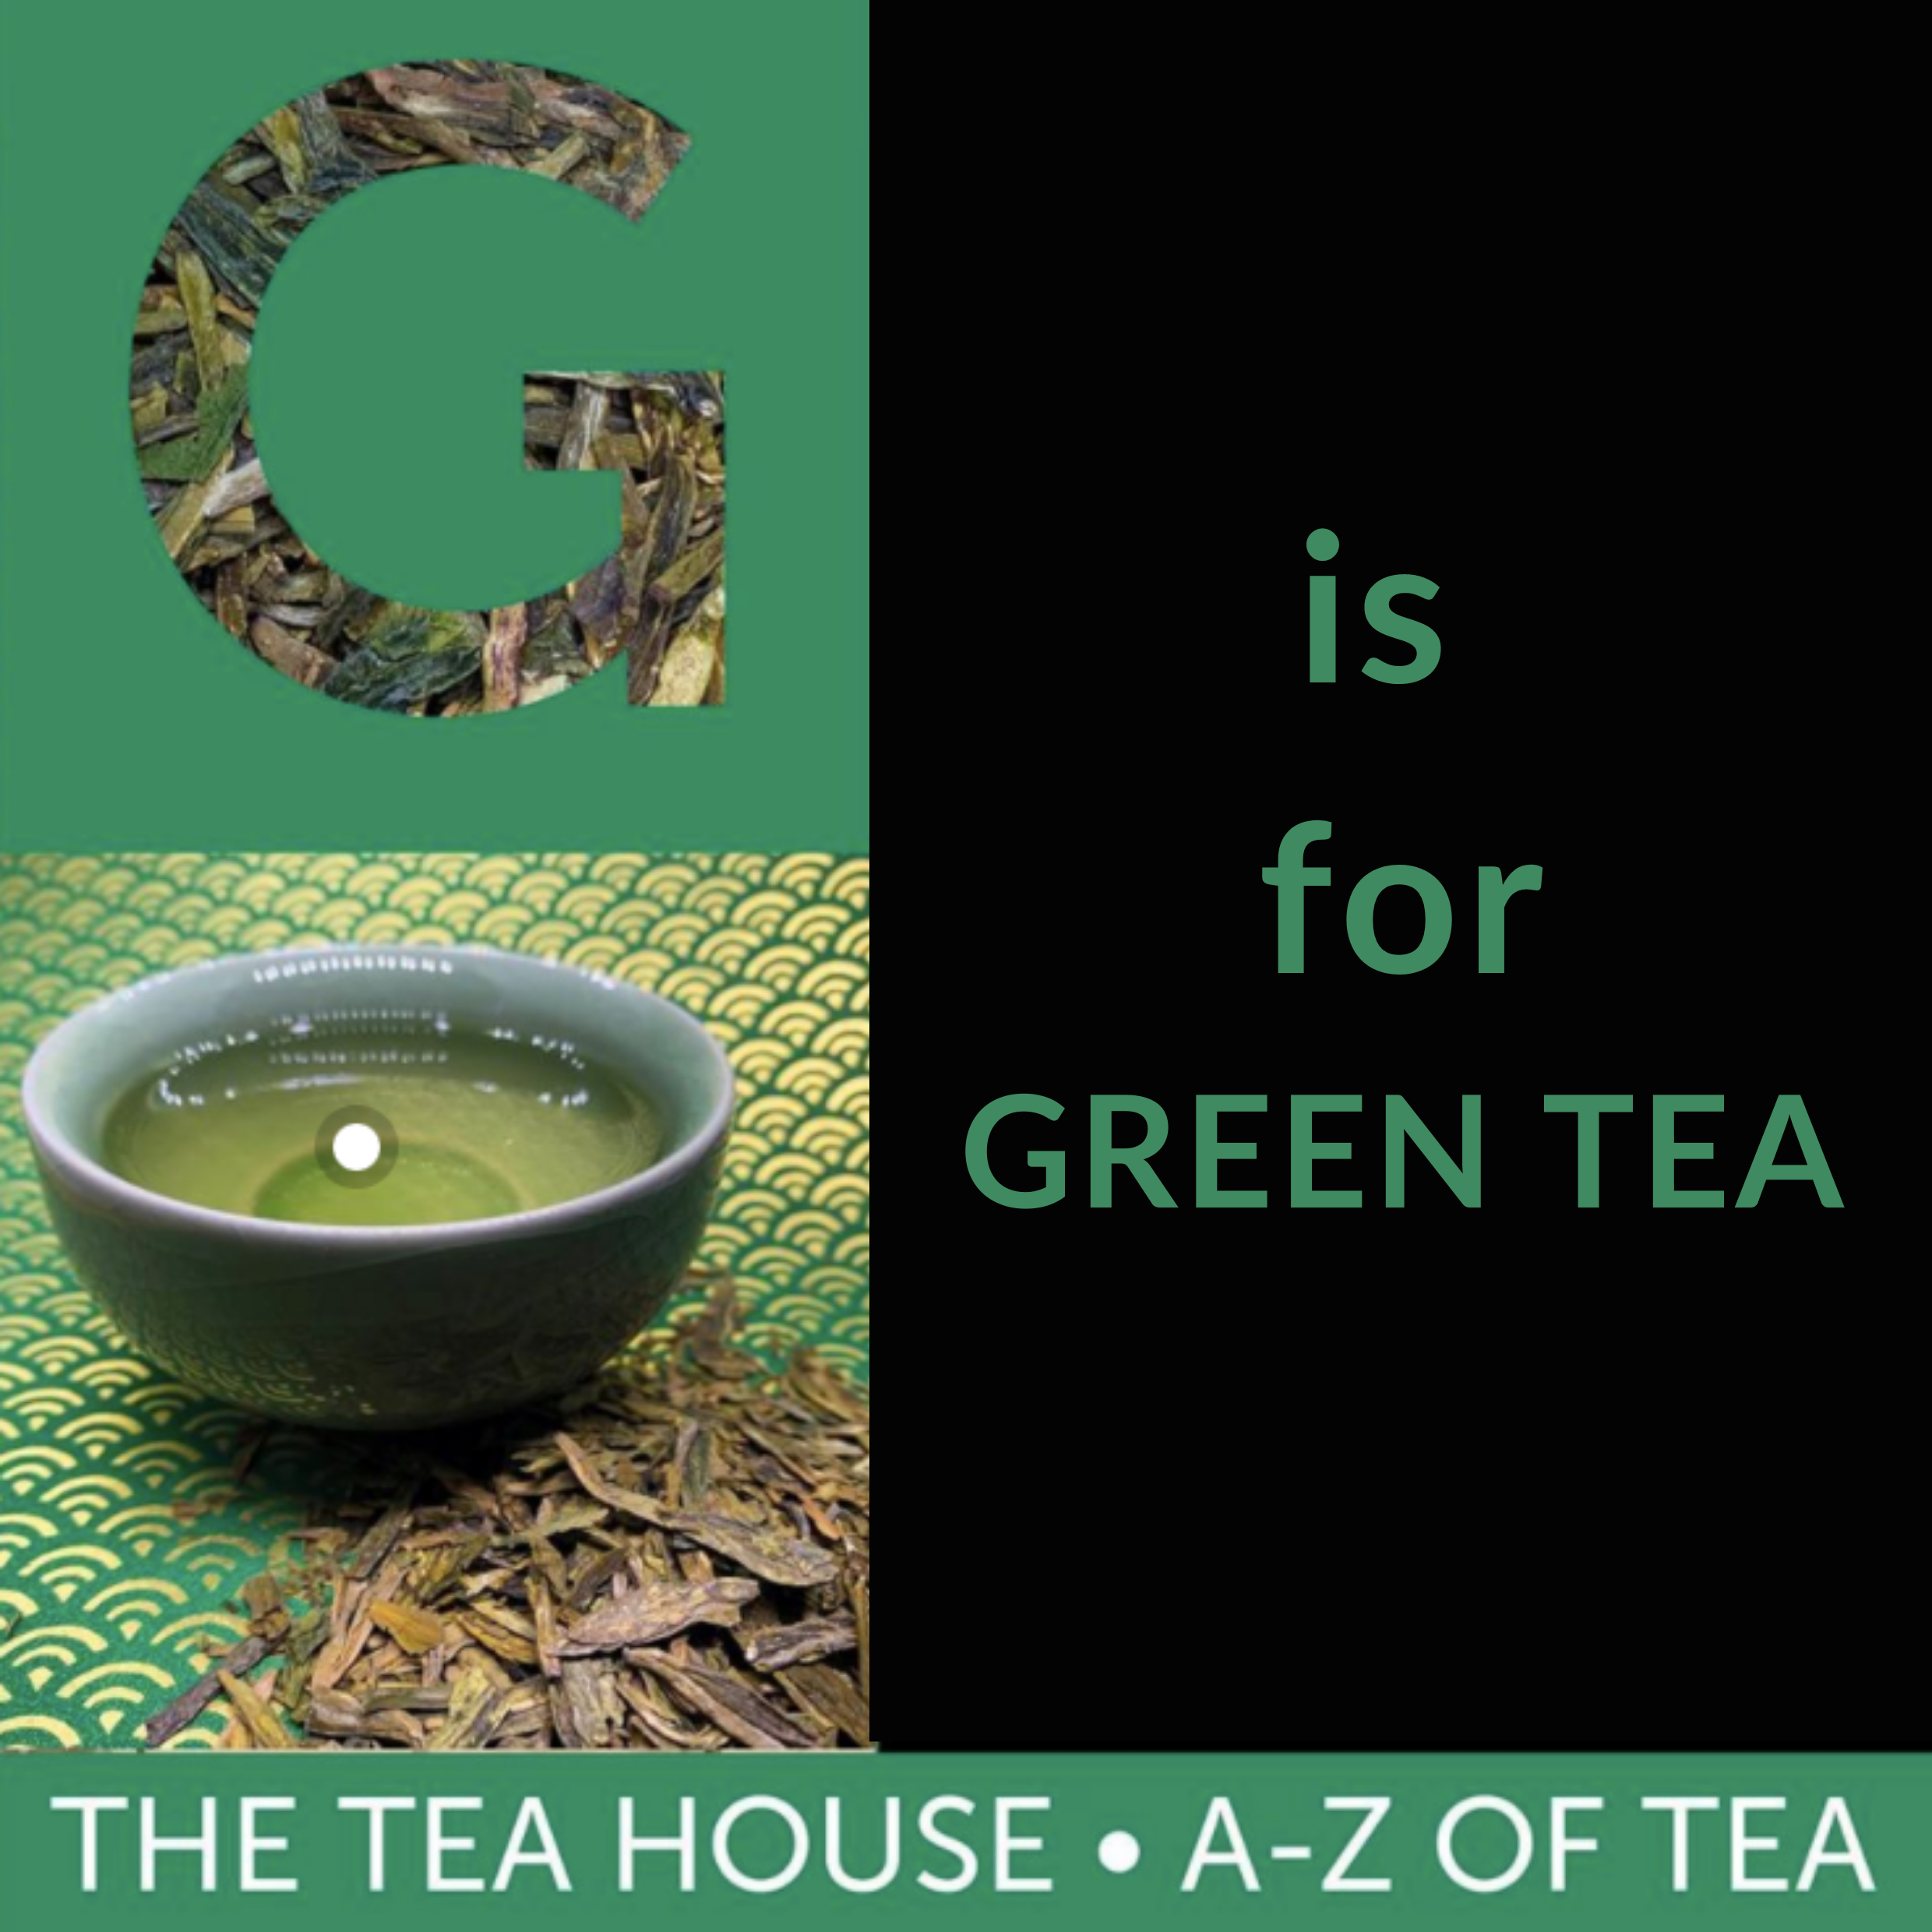 G is for Green Tea